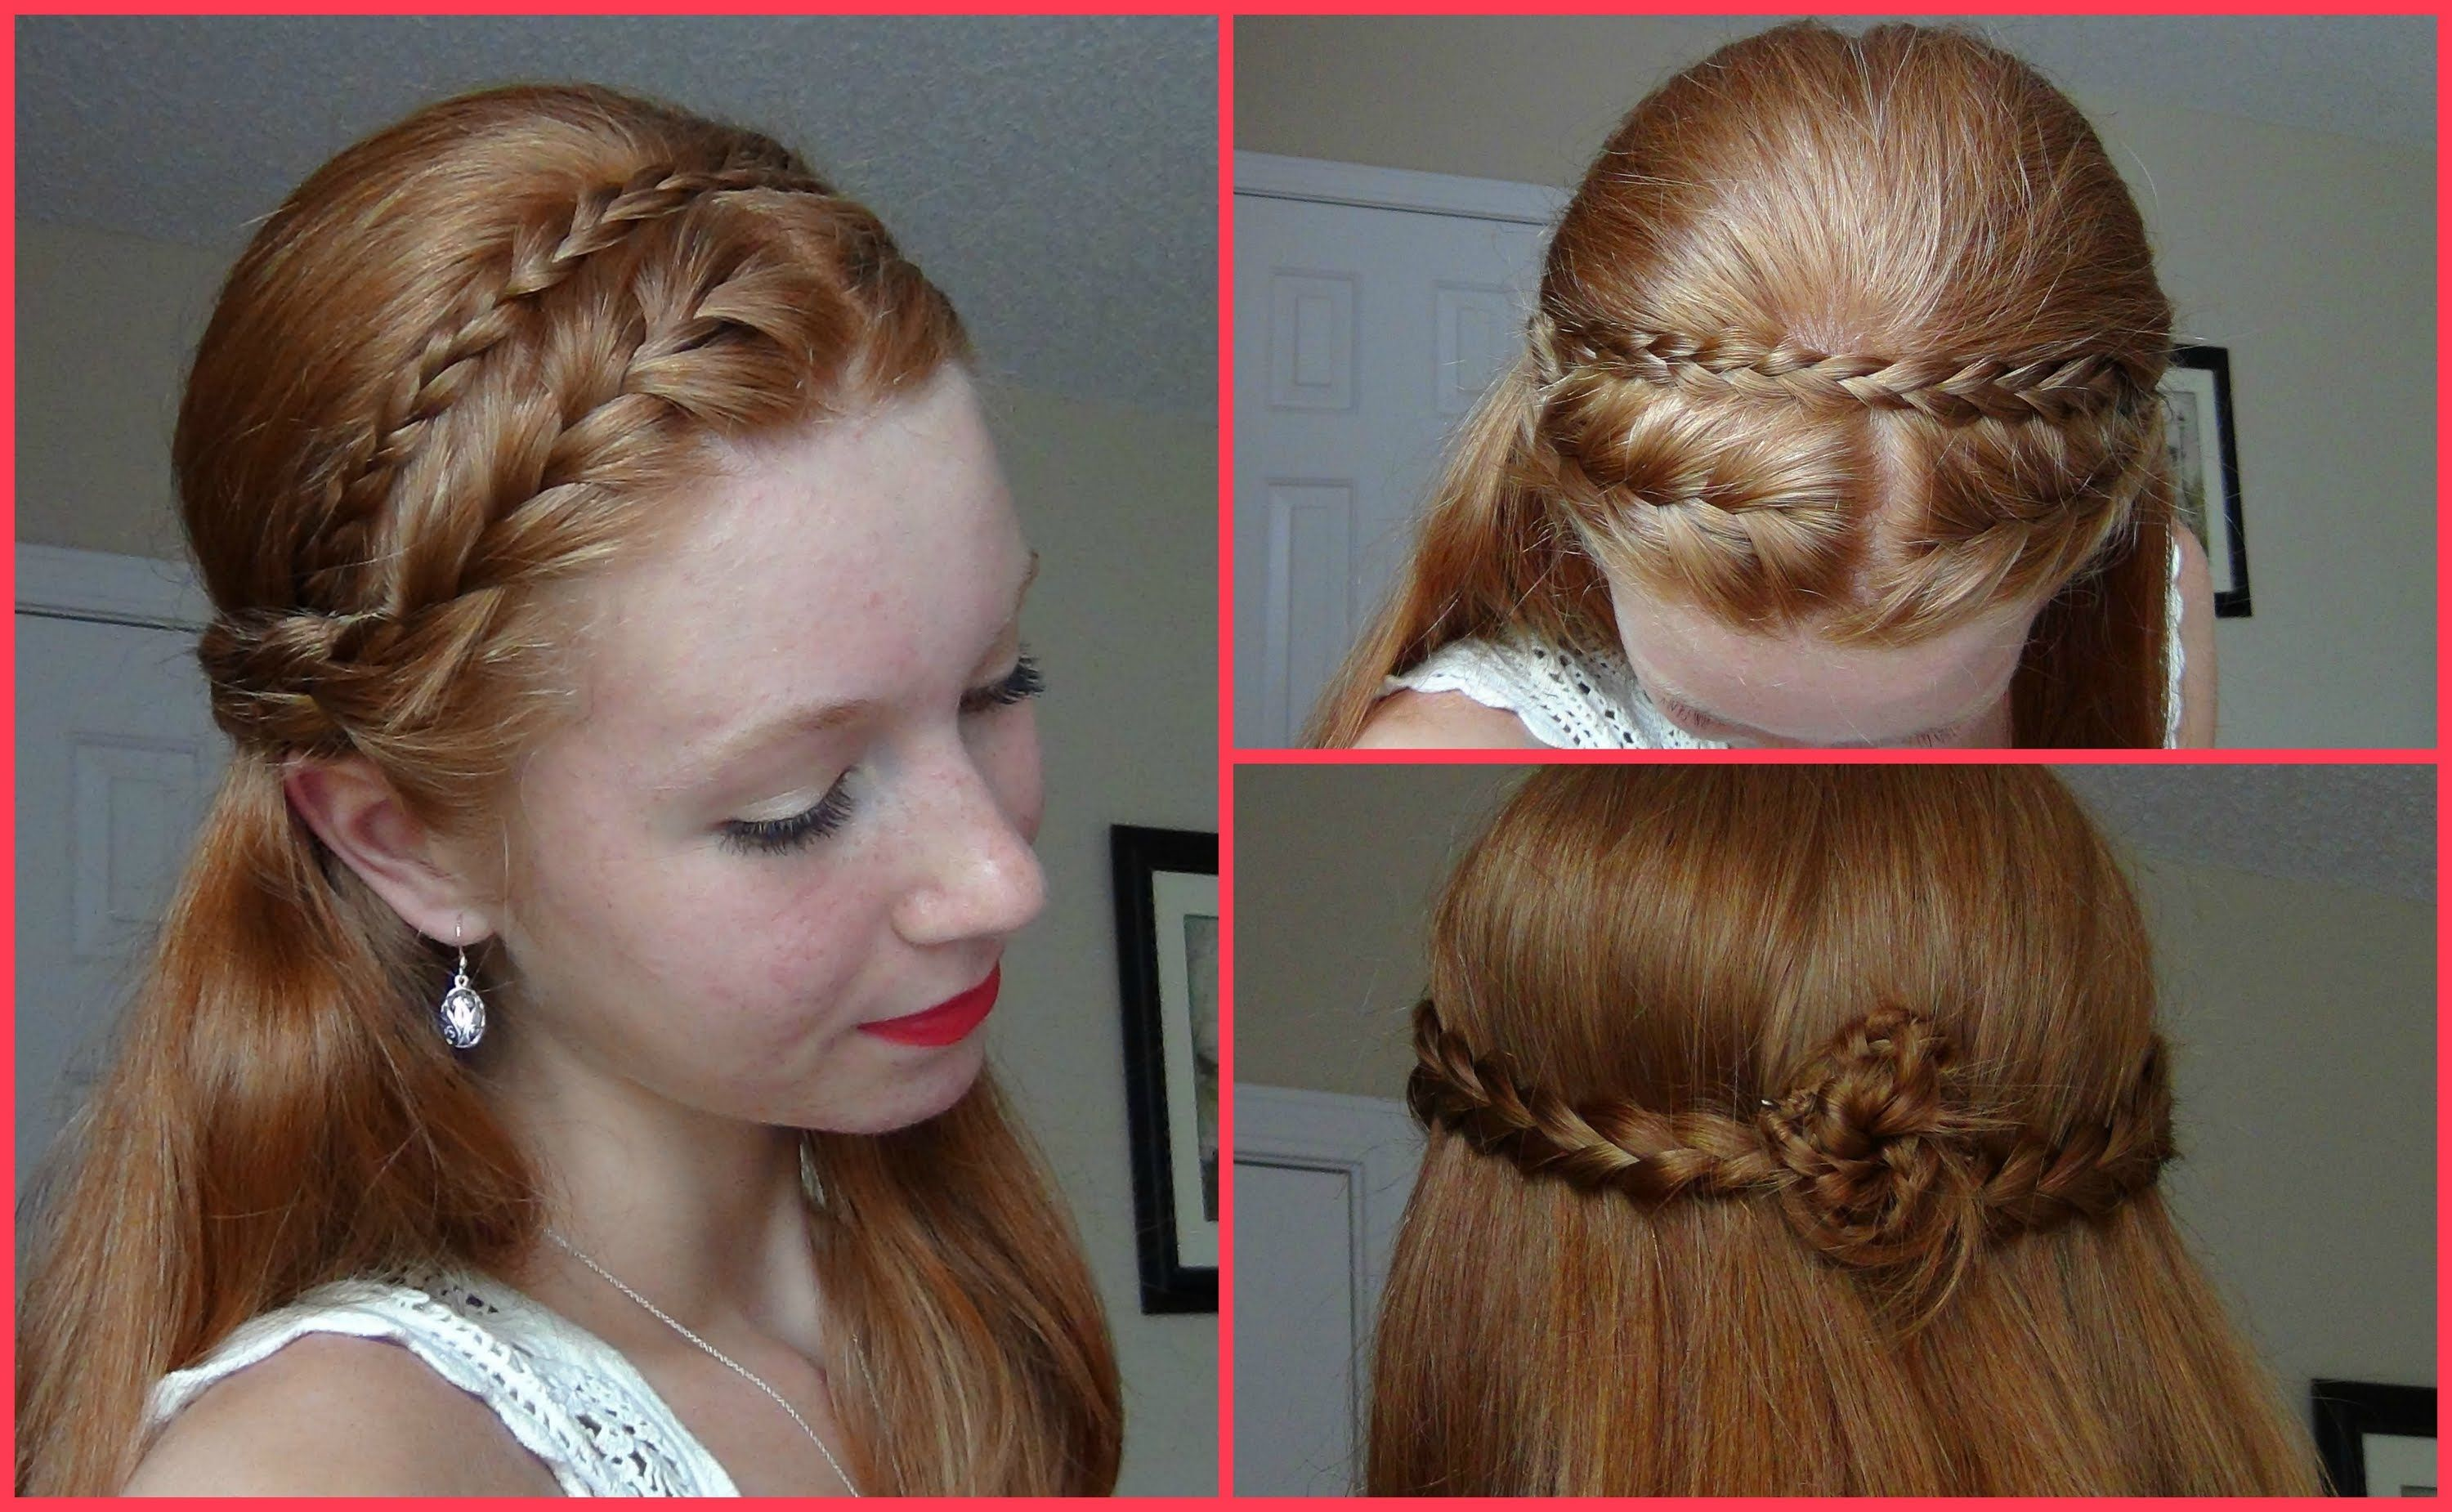 Summer 2013 Hairstyle Half Up Half Down French Braided and Braided